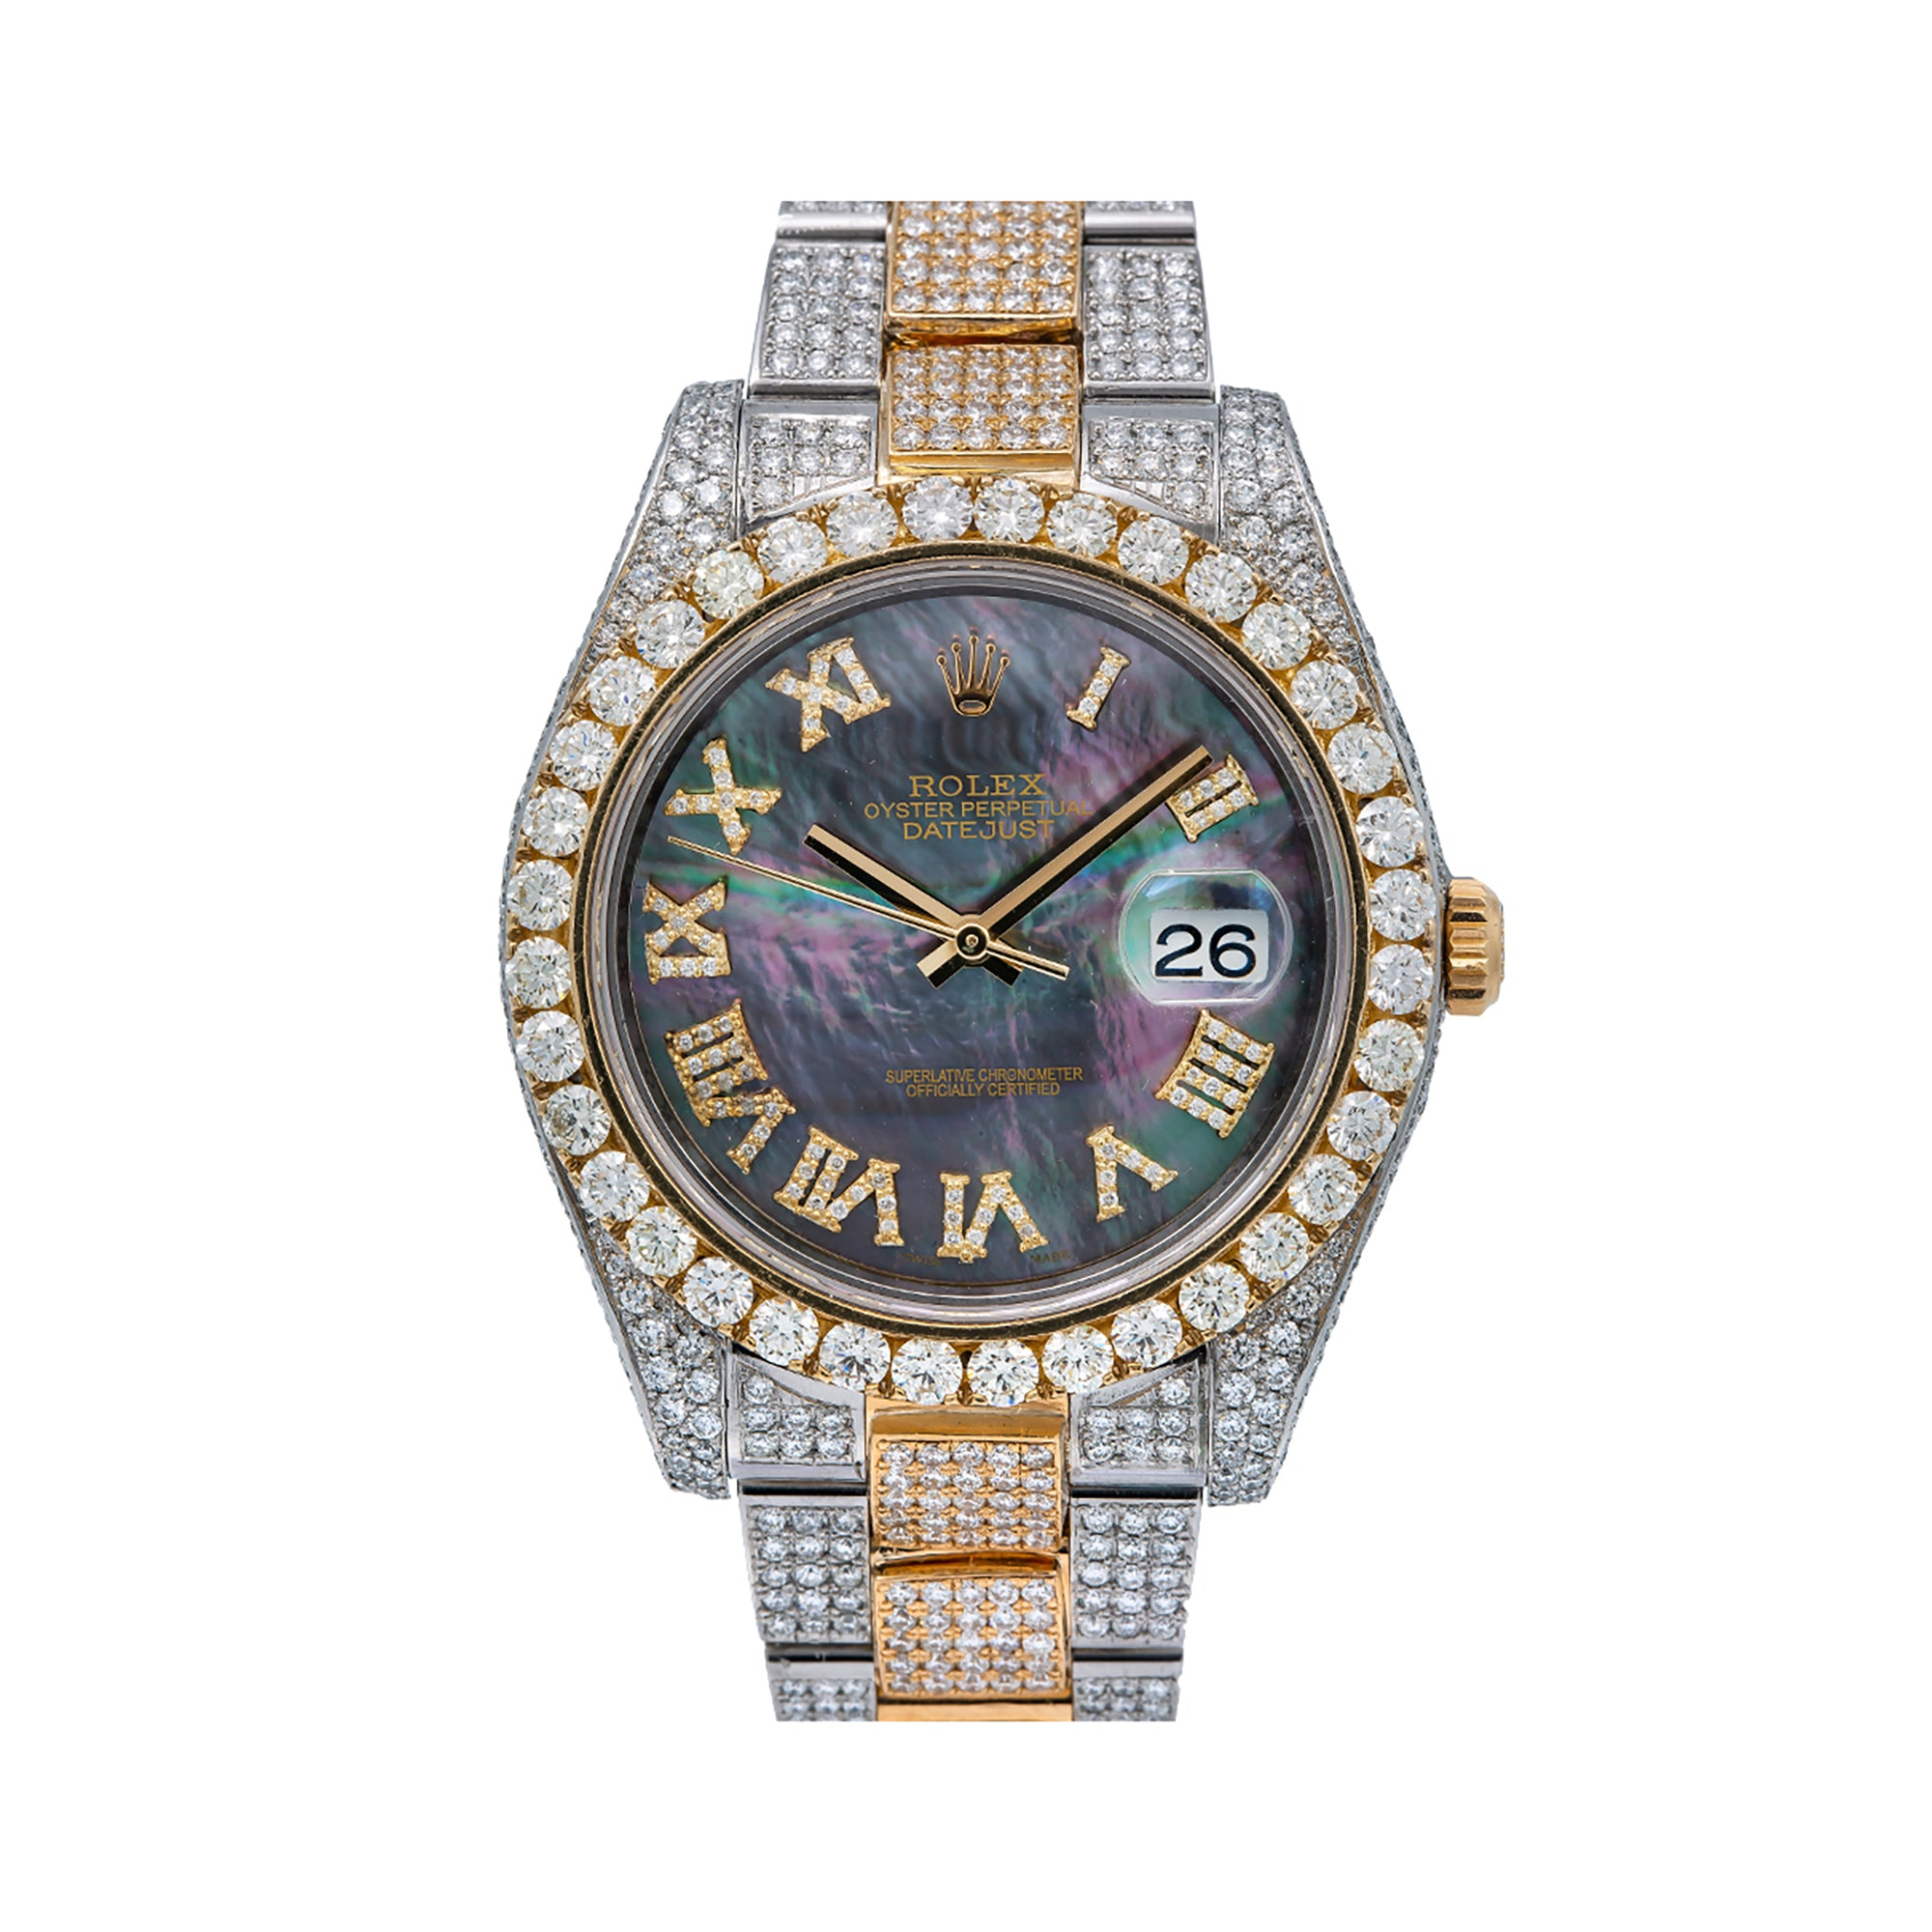 Rolex Datejust 126333 41MM Mother of Pearl Diamond Dial With 18.75 CT Diamonds